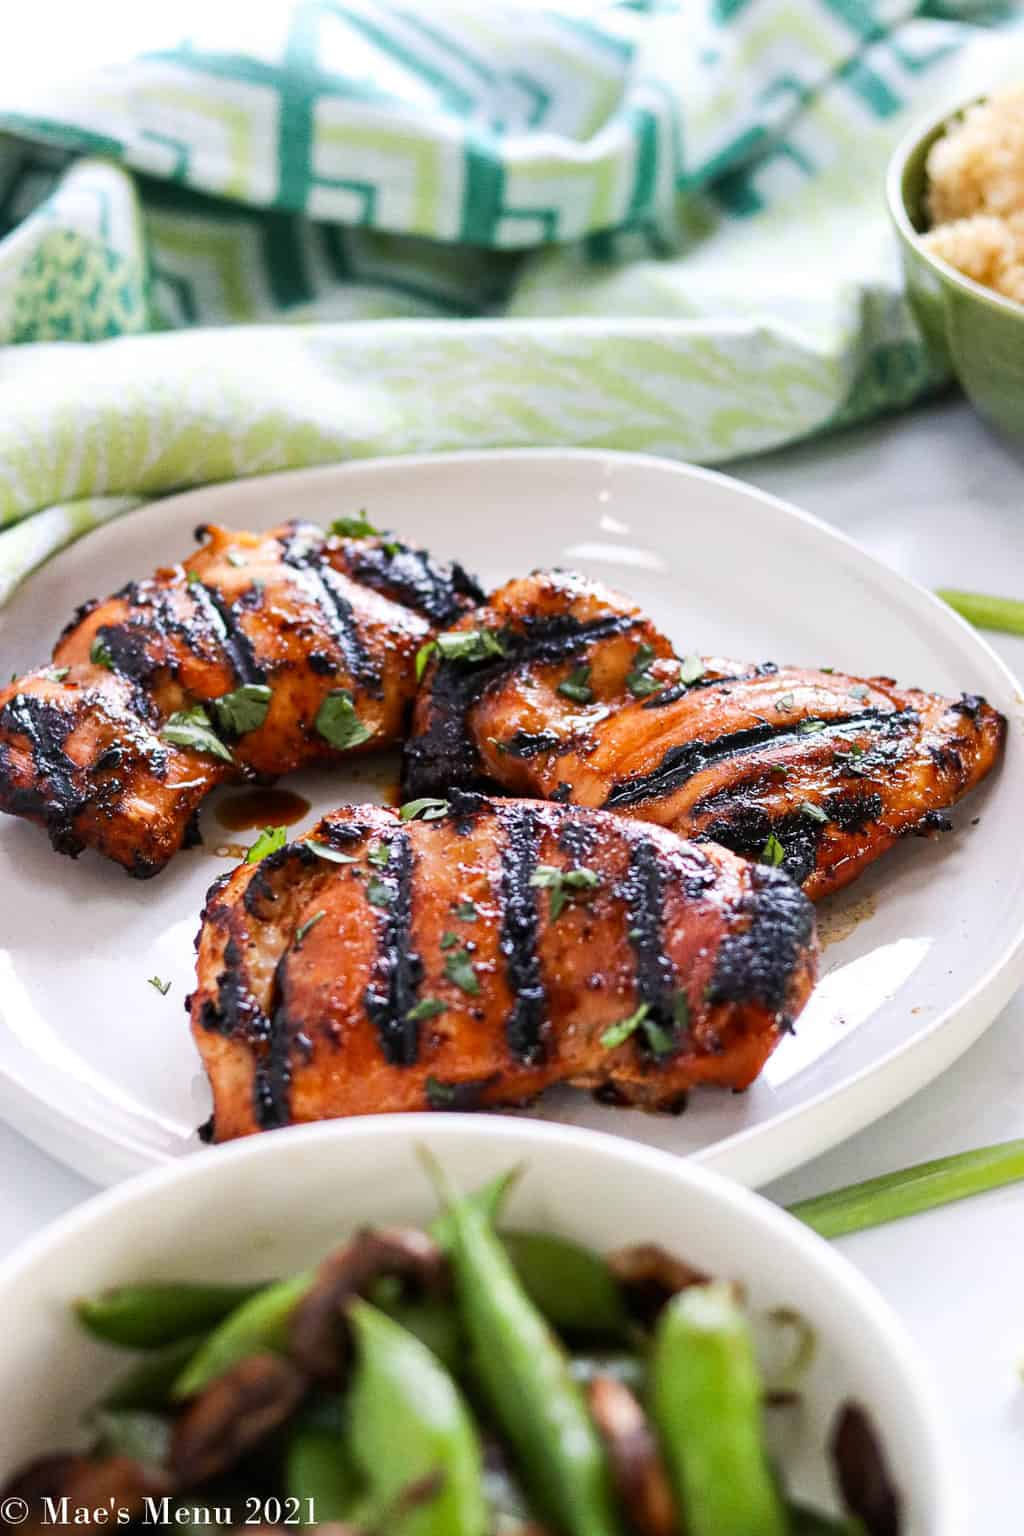 A plate of Asian marinated chicken